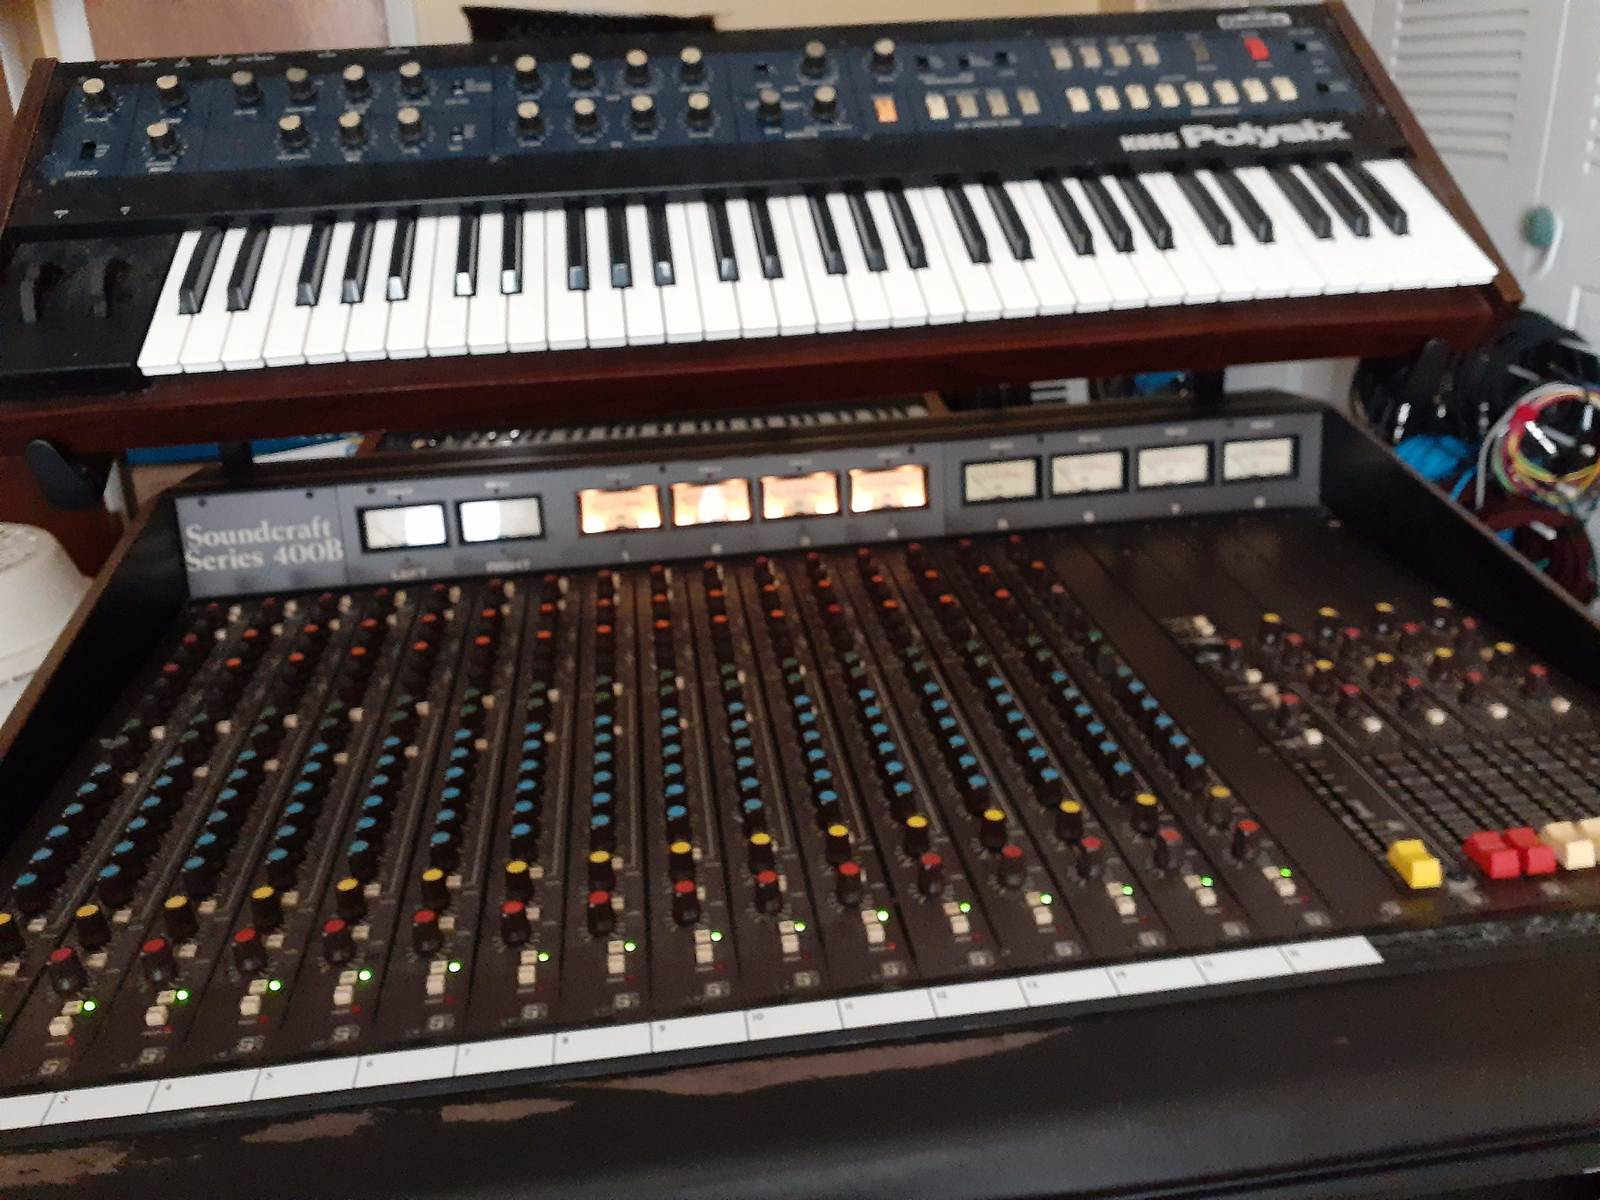 jimmarchi1's music gear photo containing Korg PolySix and Soundcraft 400B 16 channel frame